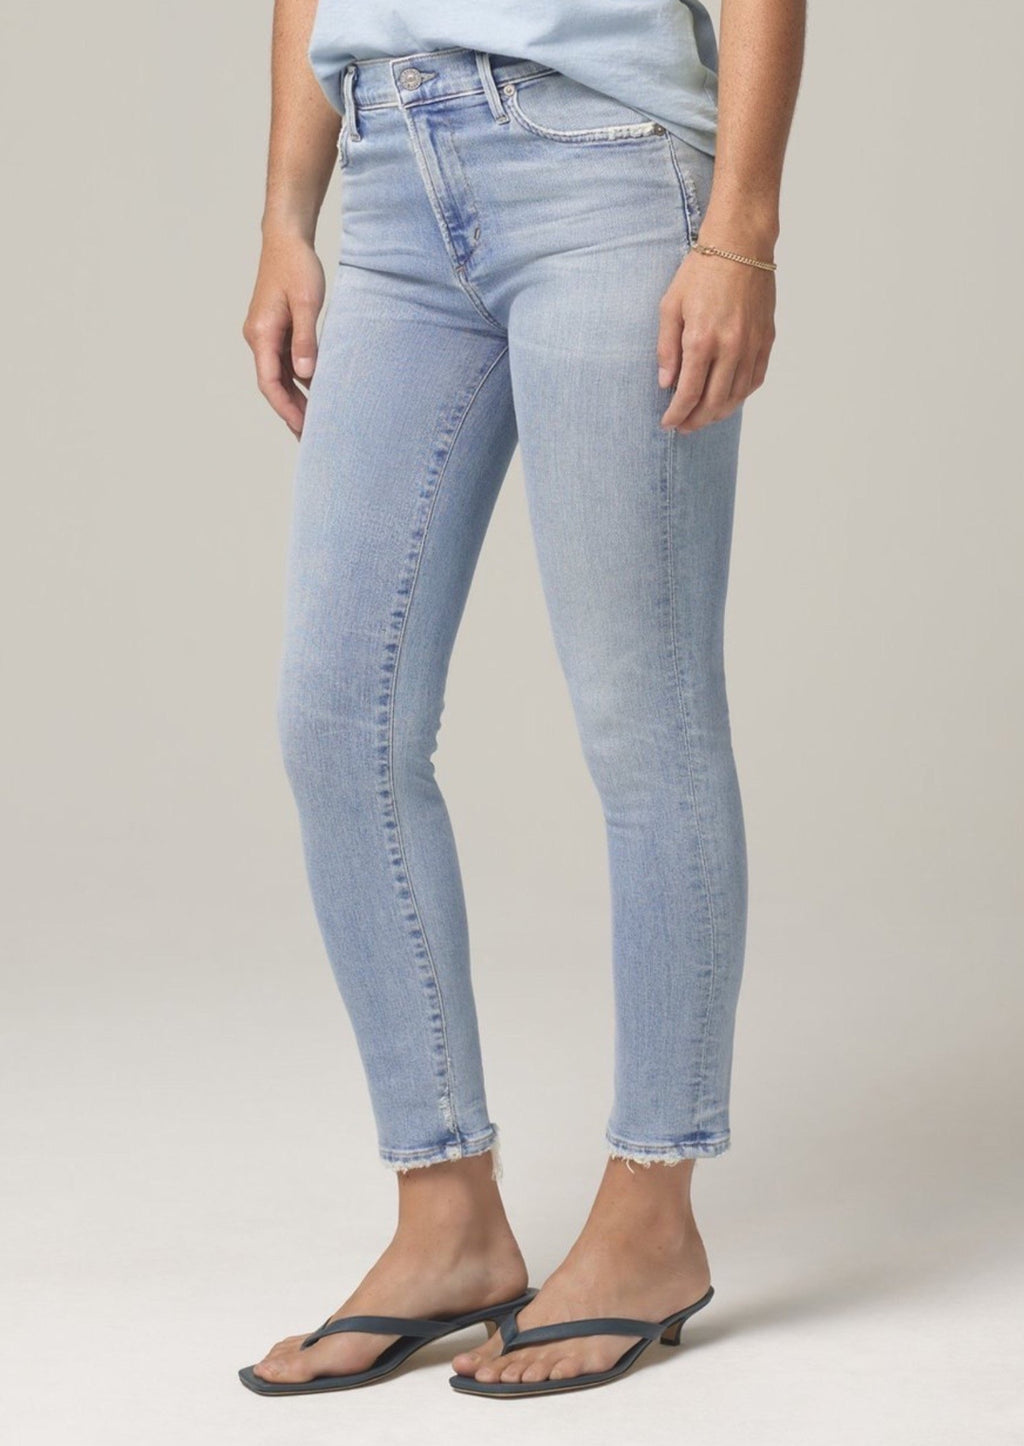 Citizen's of Humanity Rocket Crop Mid Rise Skinny